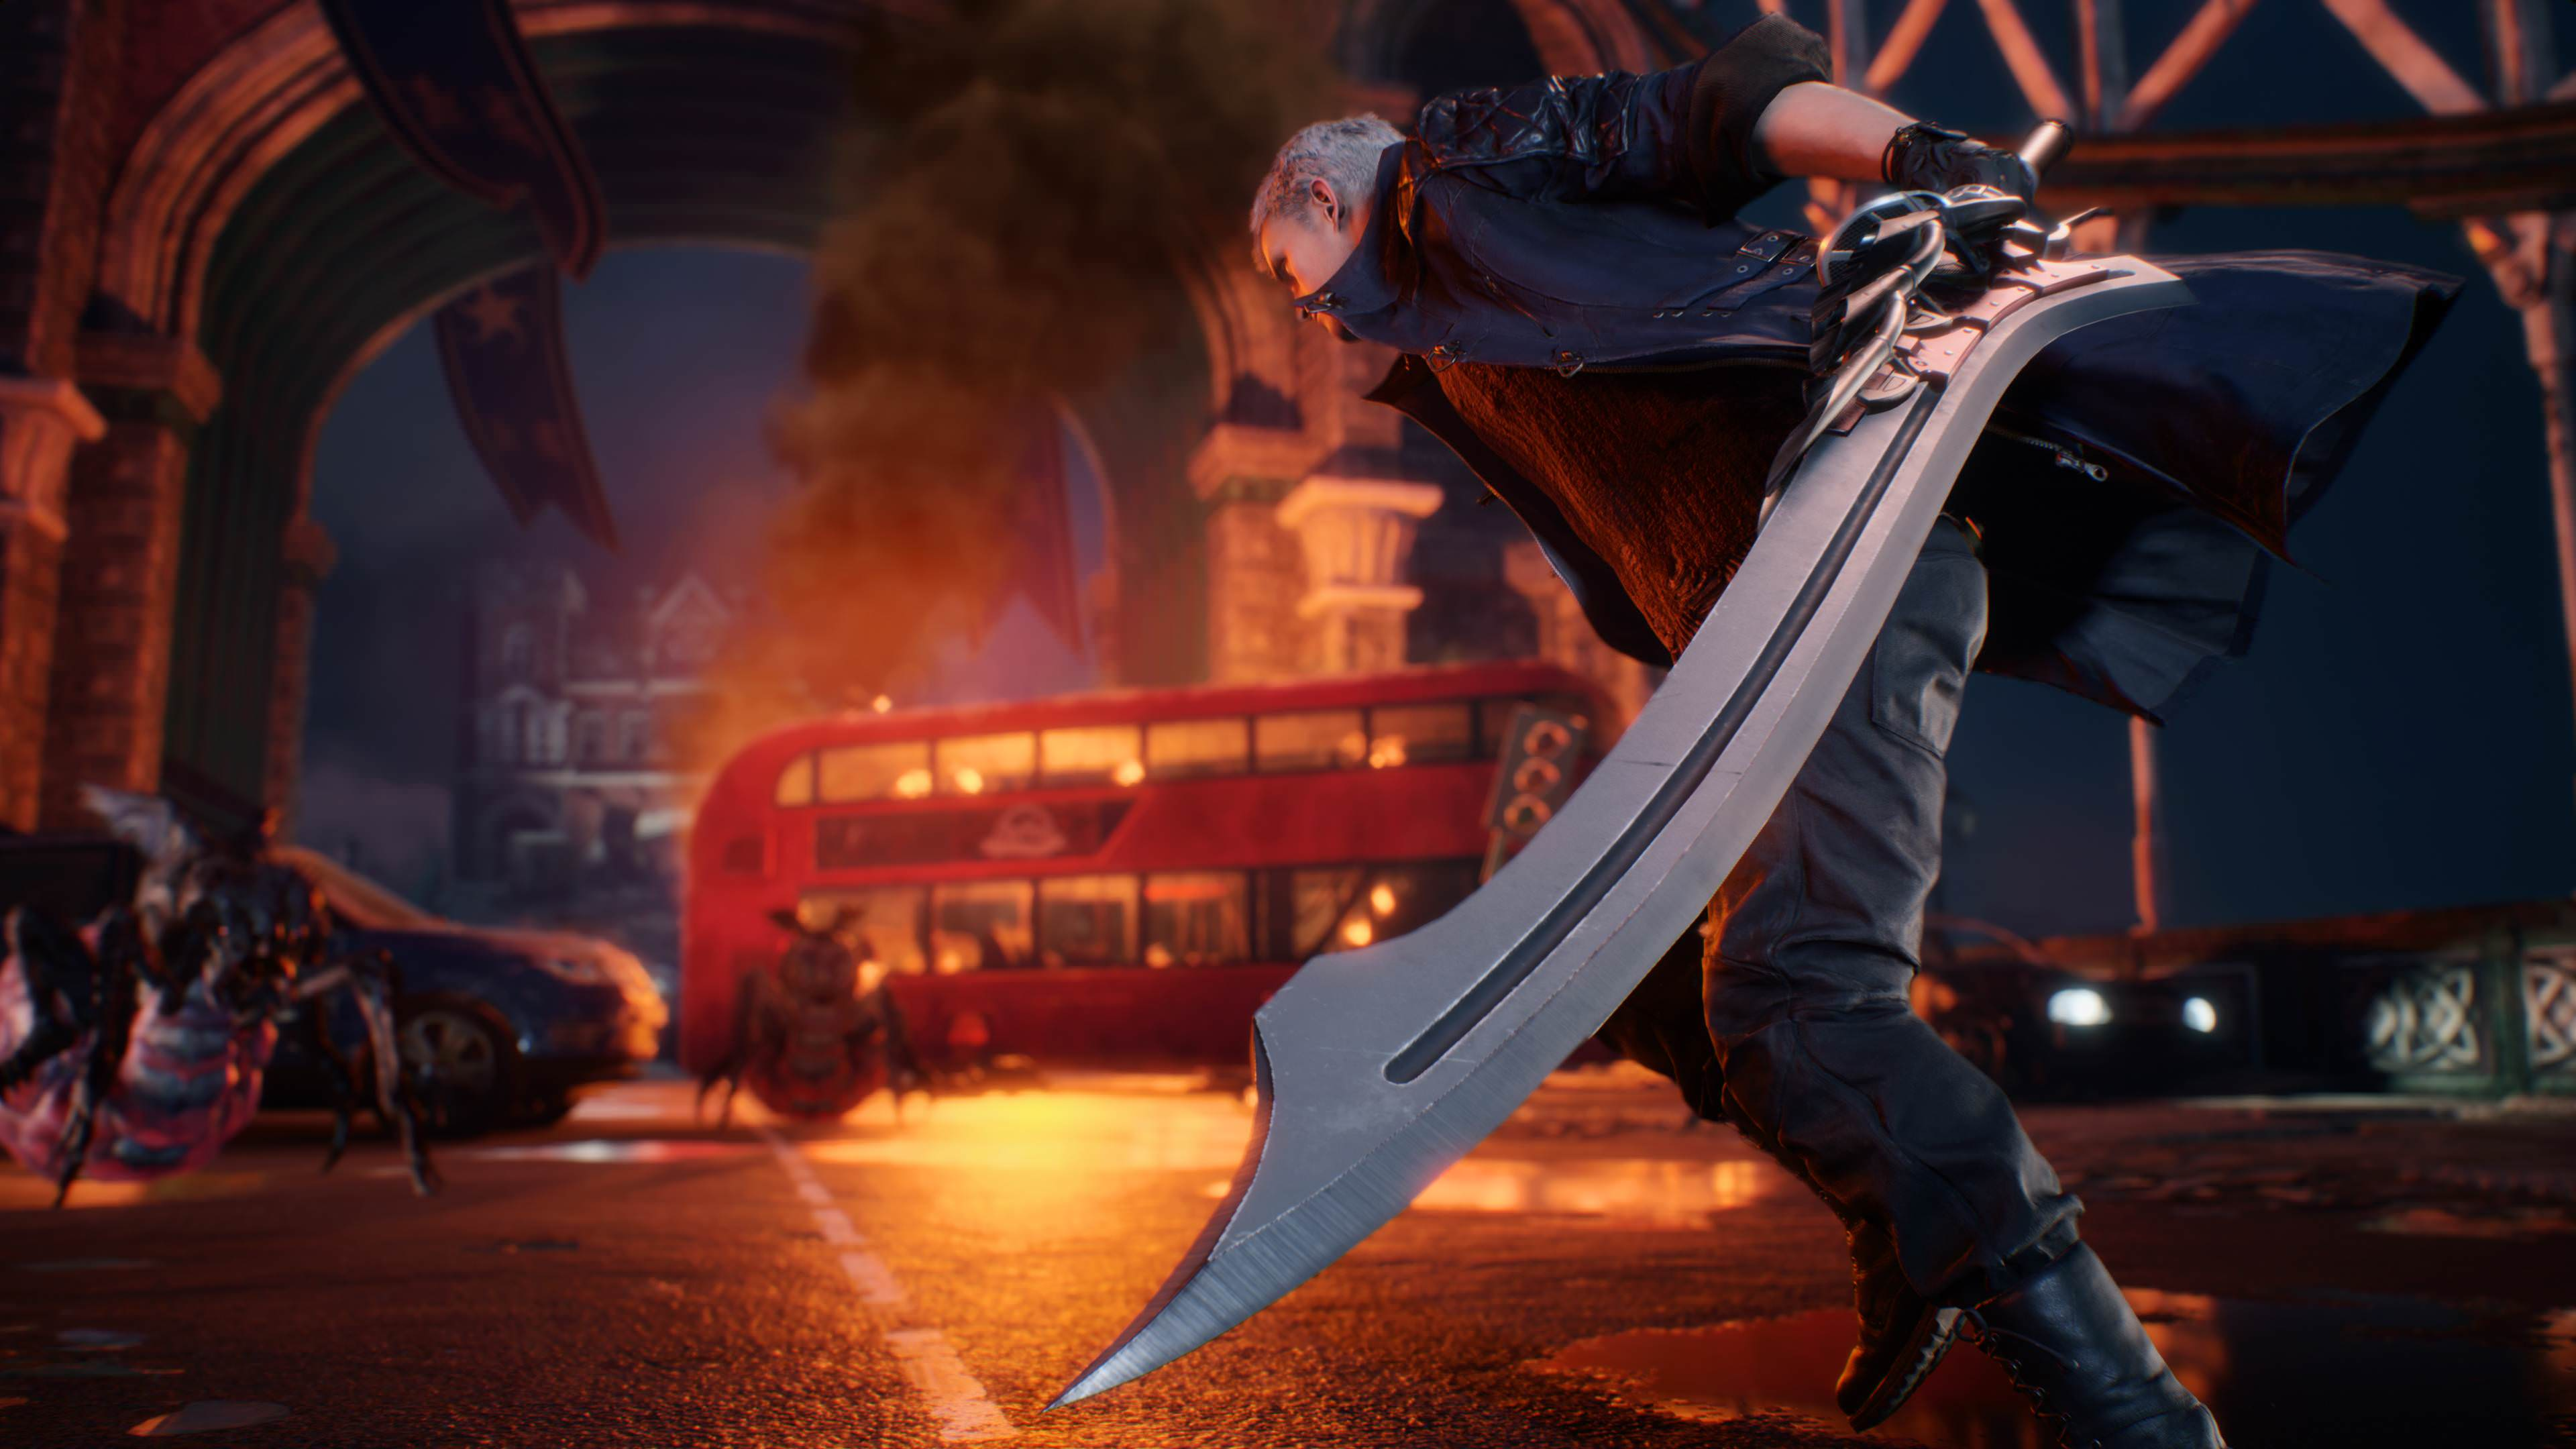 Devil may cry 5 release date in Australia